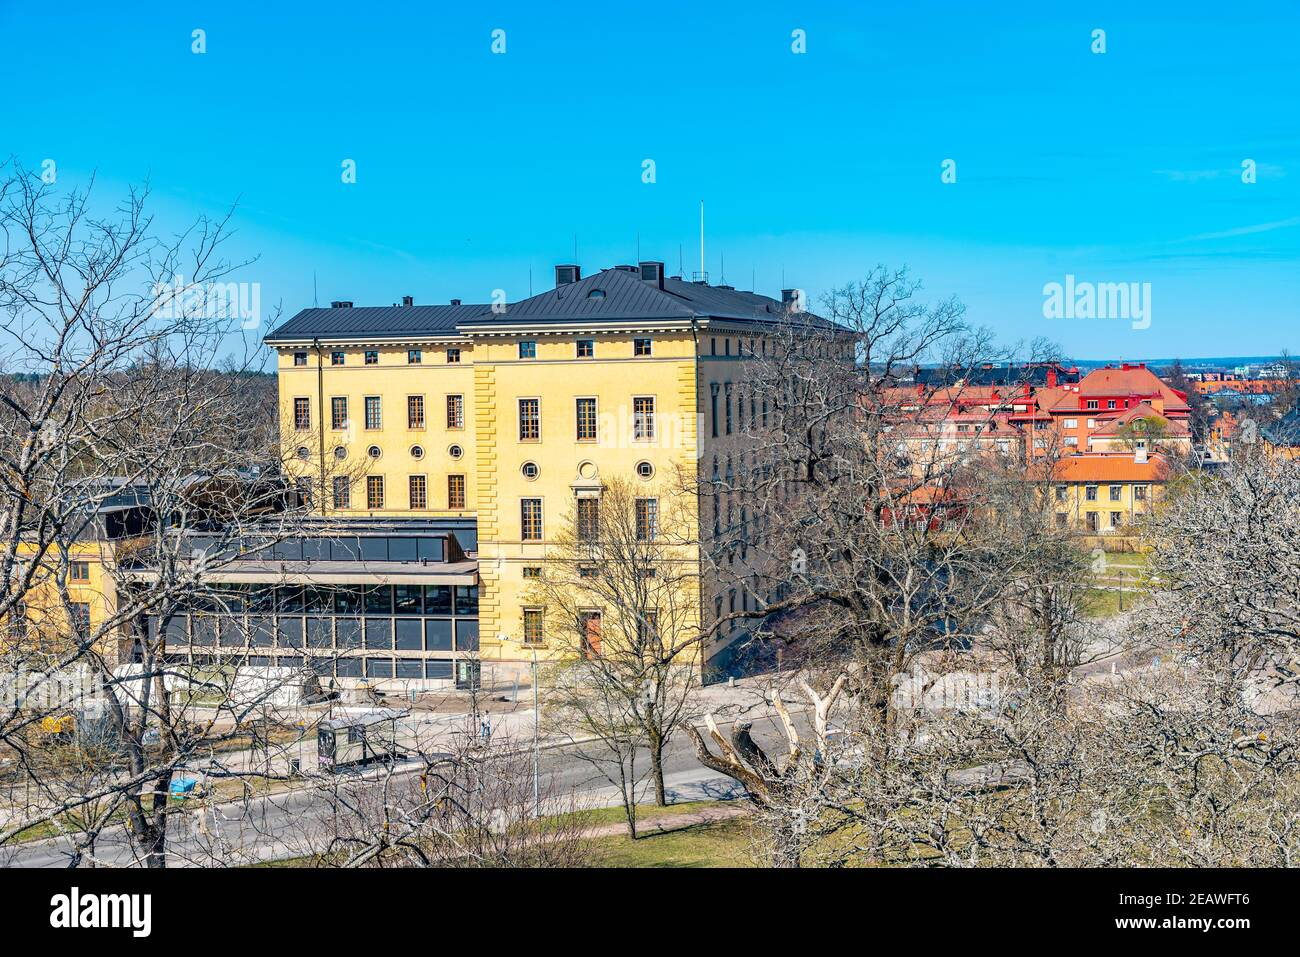 Aerial view of the Uppsala university library in Sweden Stock Photo